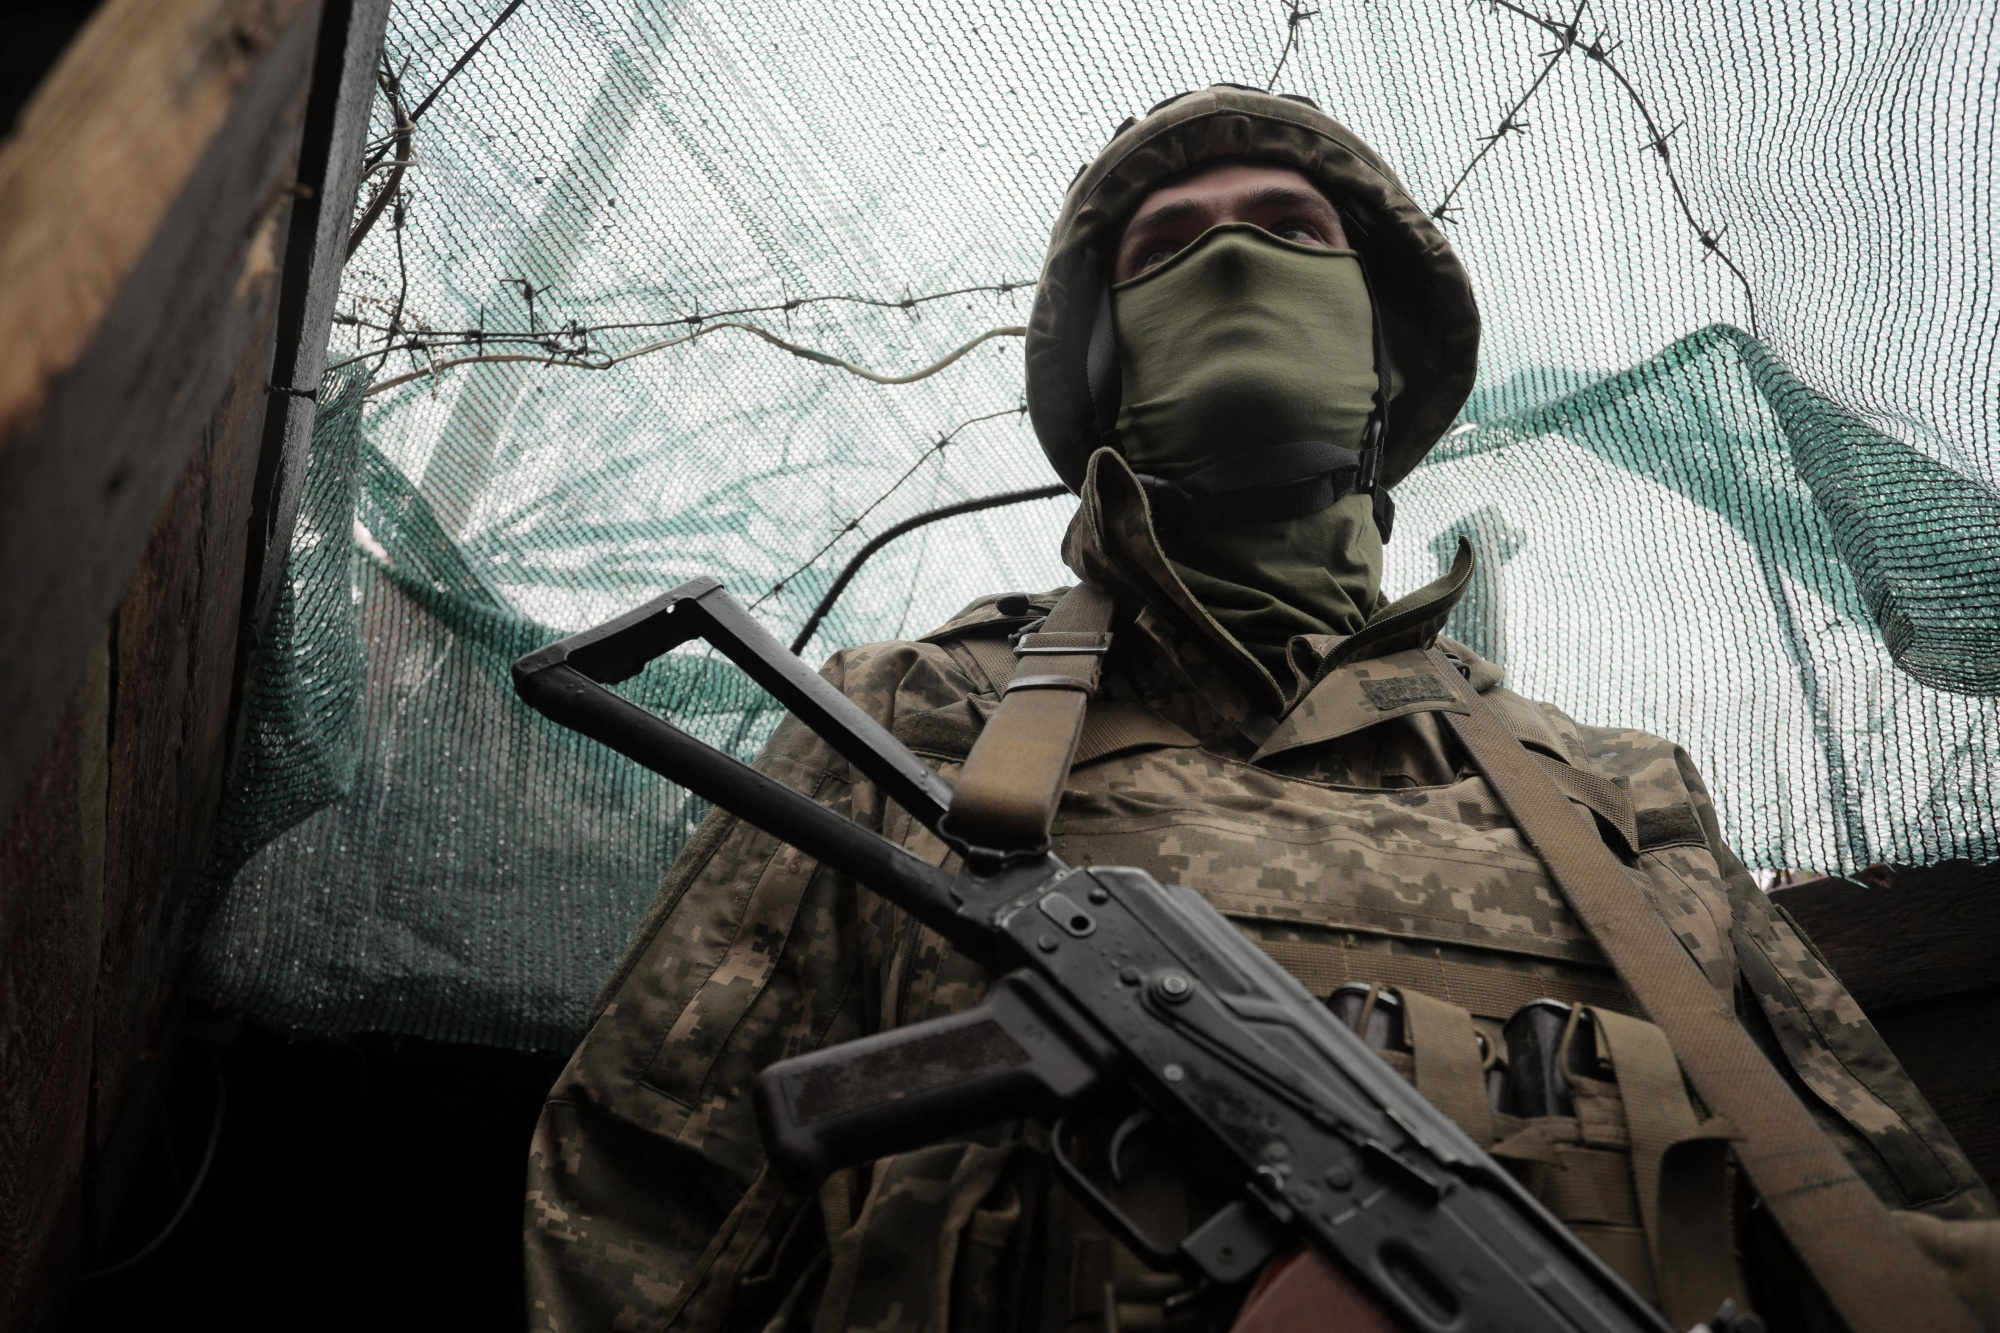 Ukraine's armed forces could use some more help.